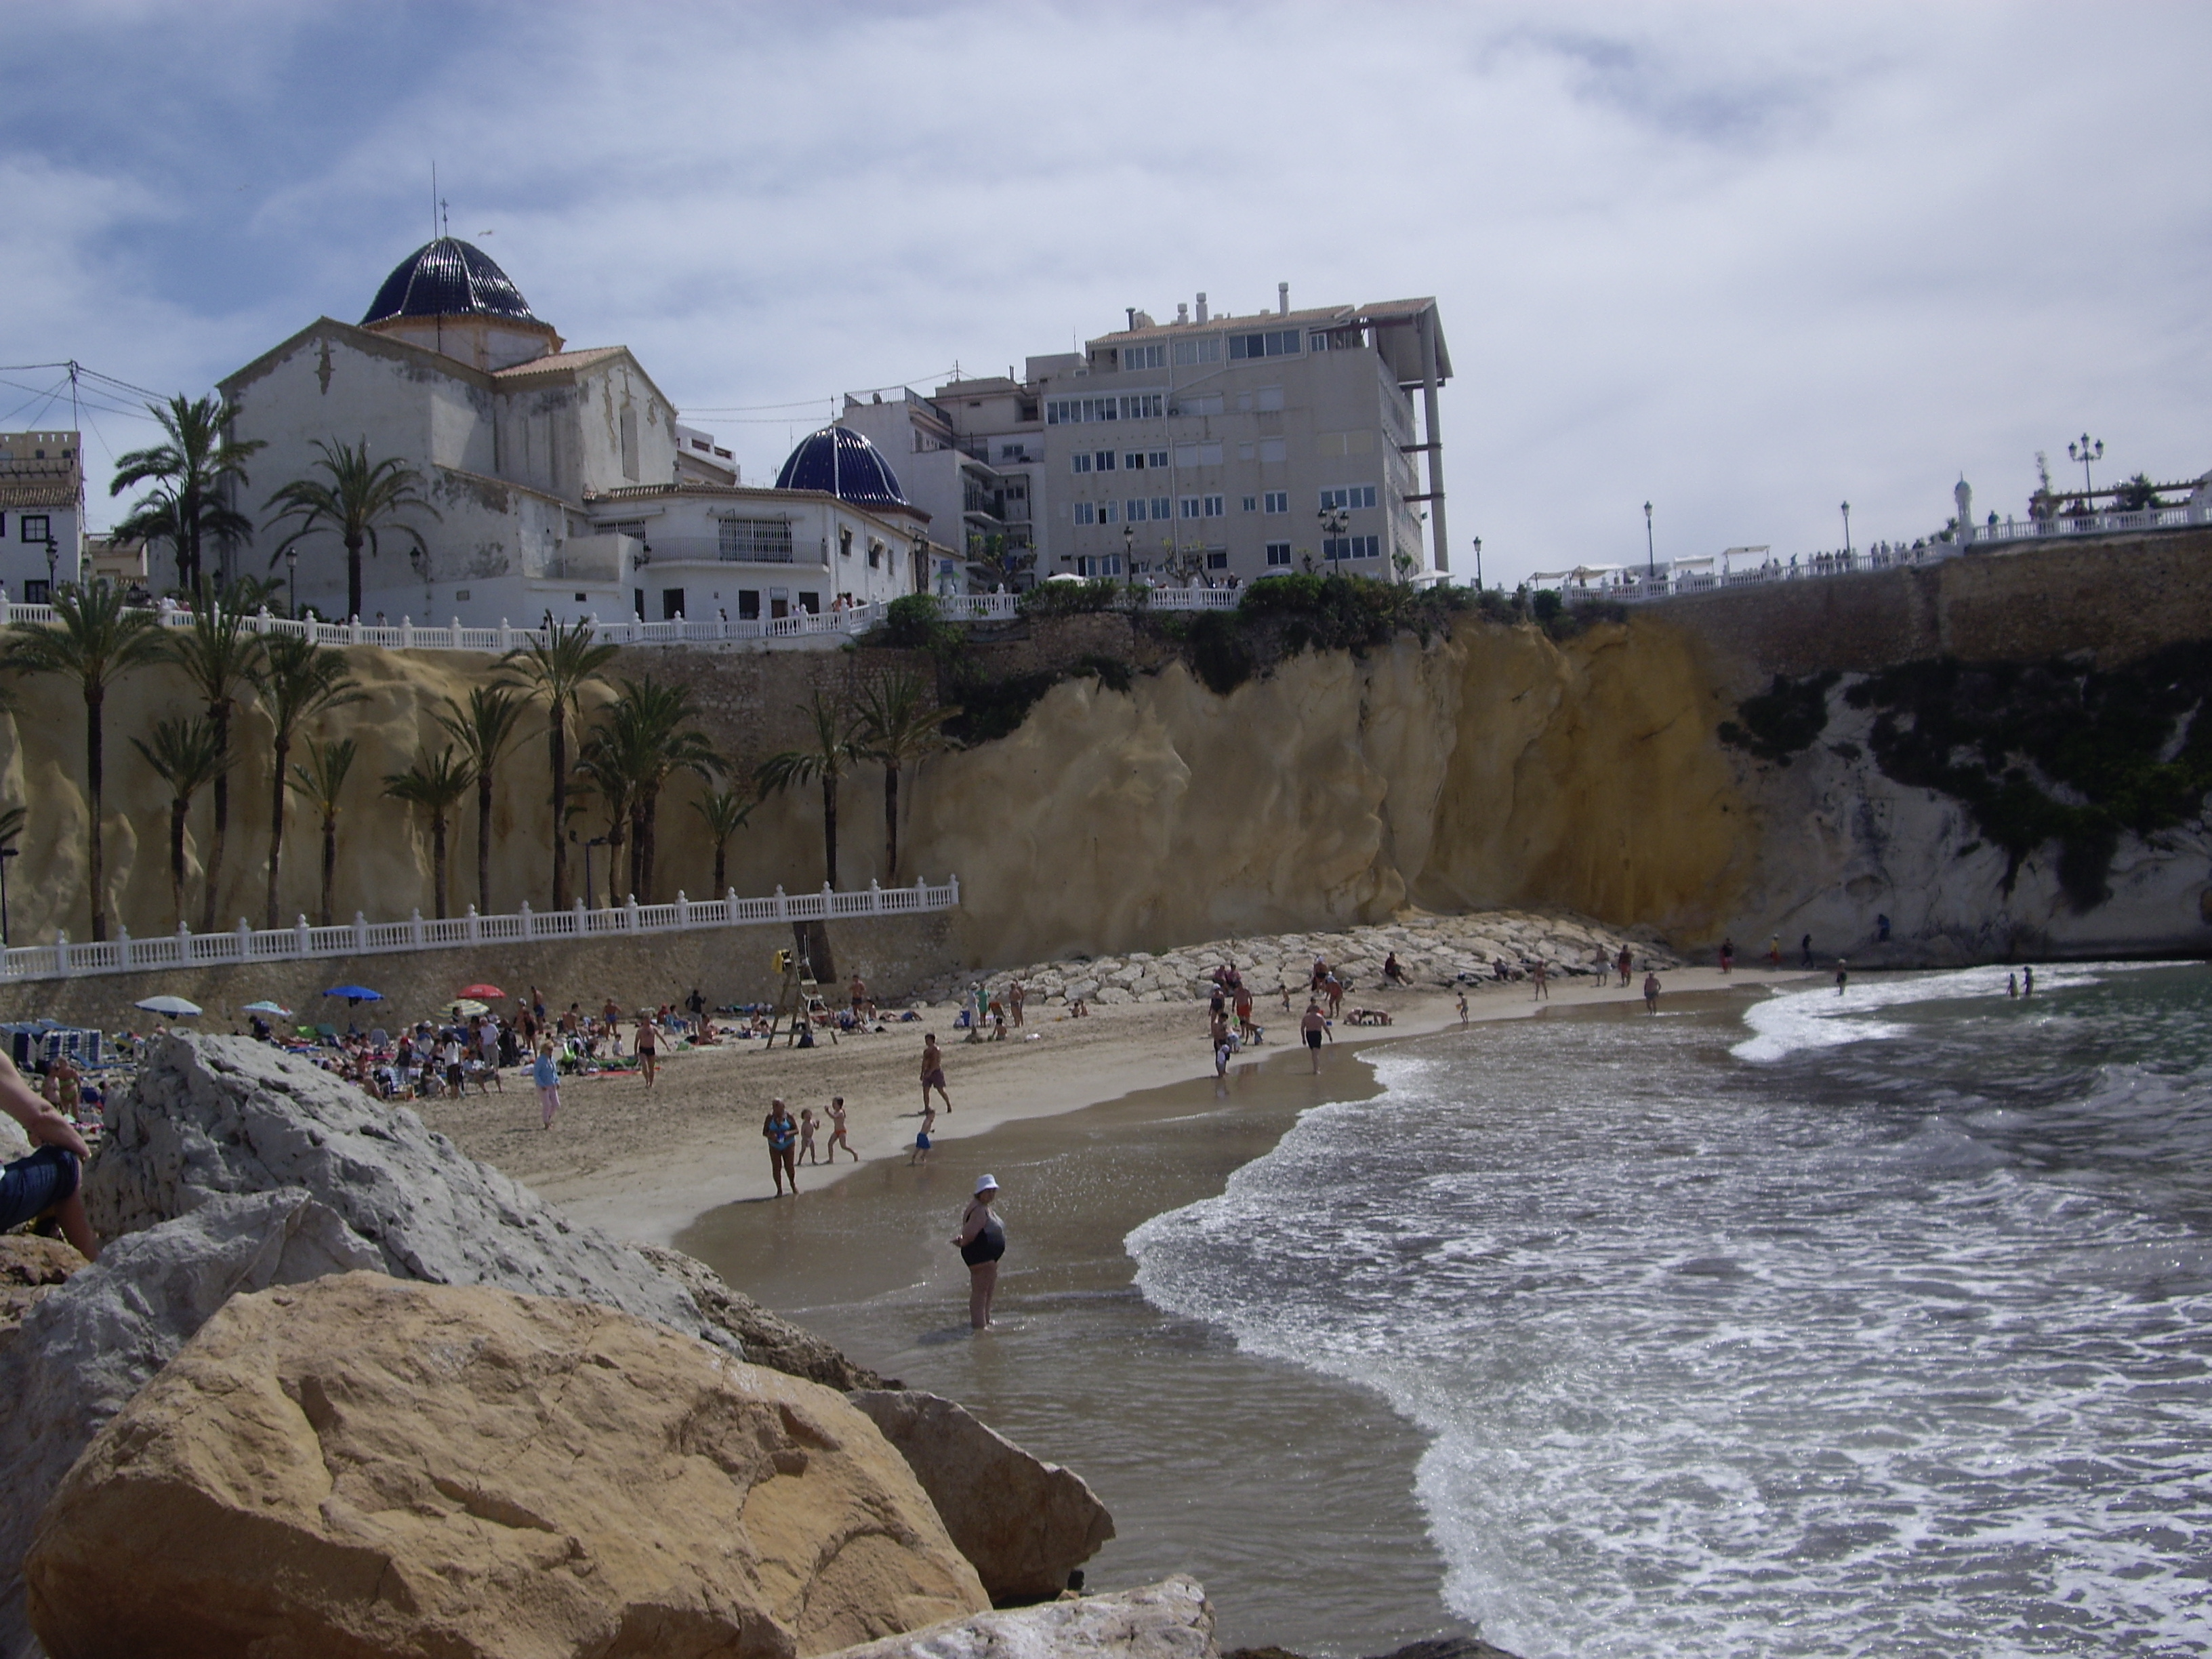 http://upload.wikimedia.org/wikipedia/commons/a/ae/Playa_del_Mal_Pas.JPG